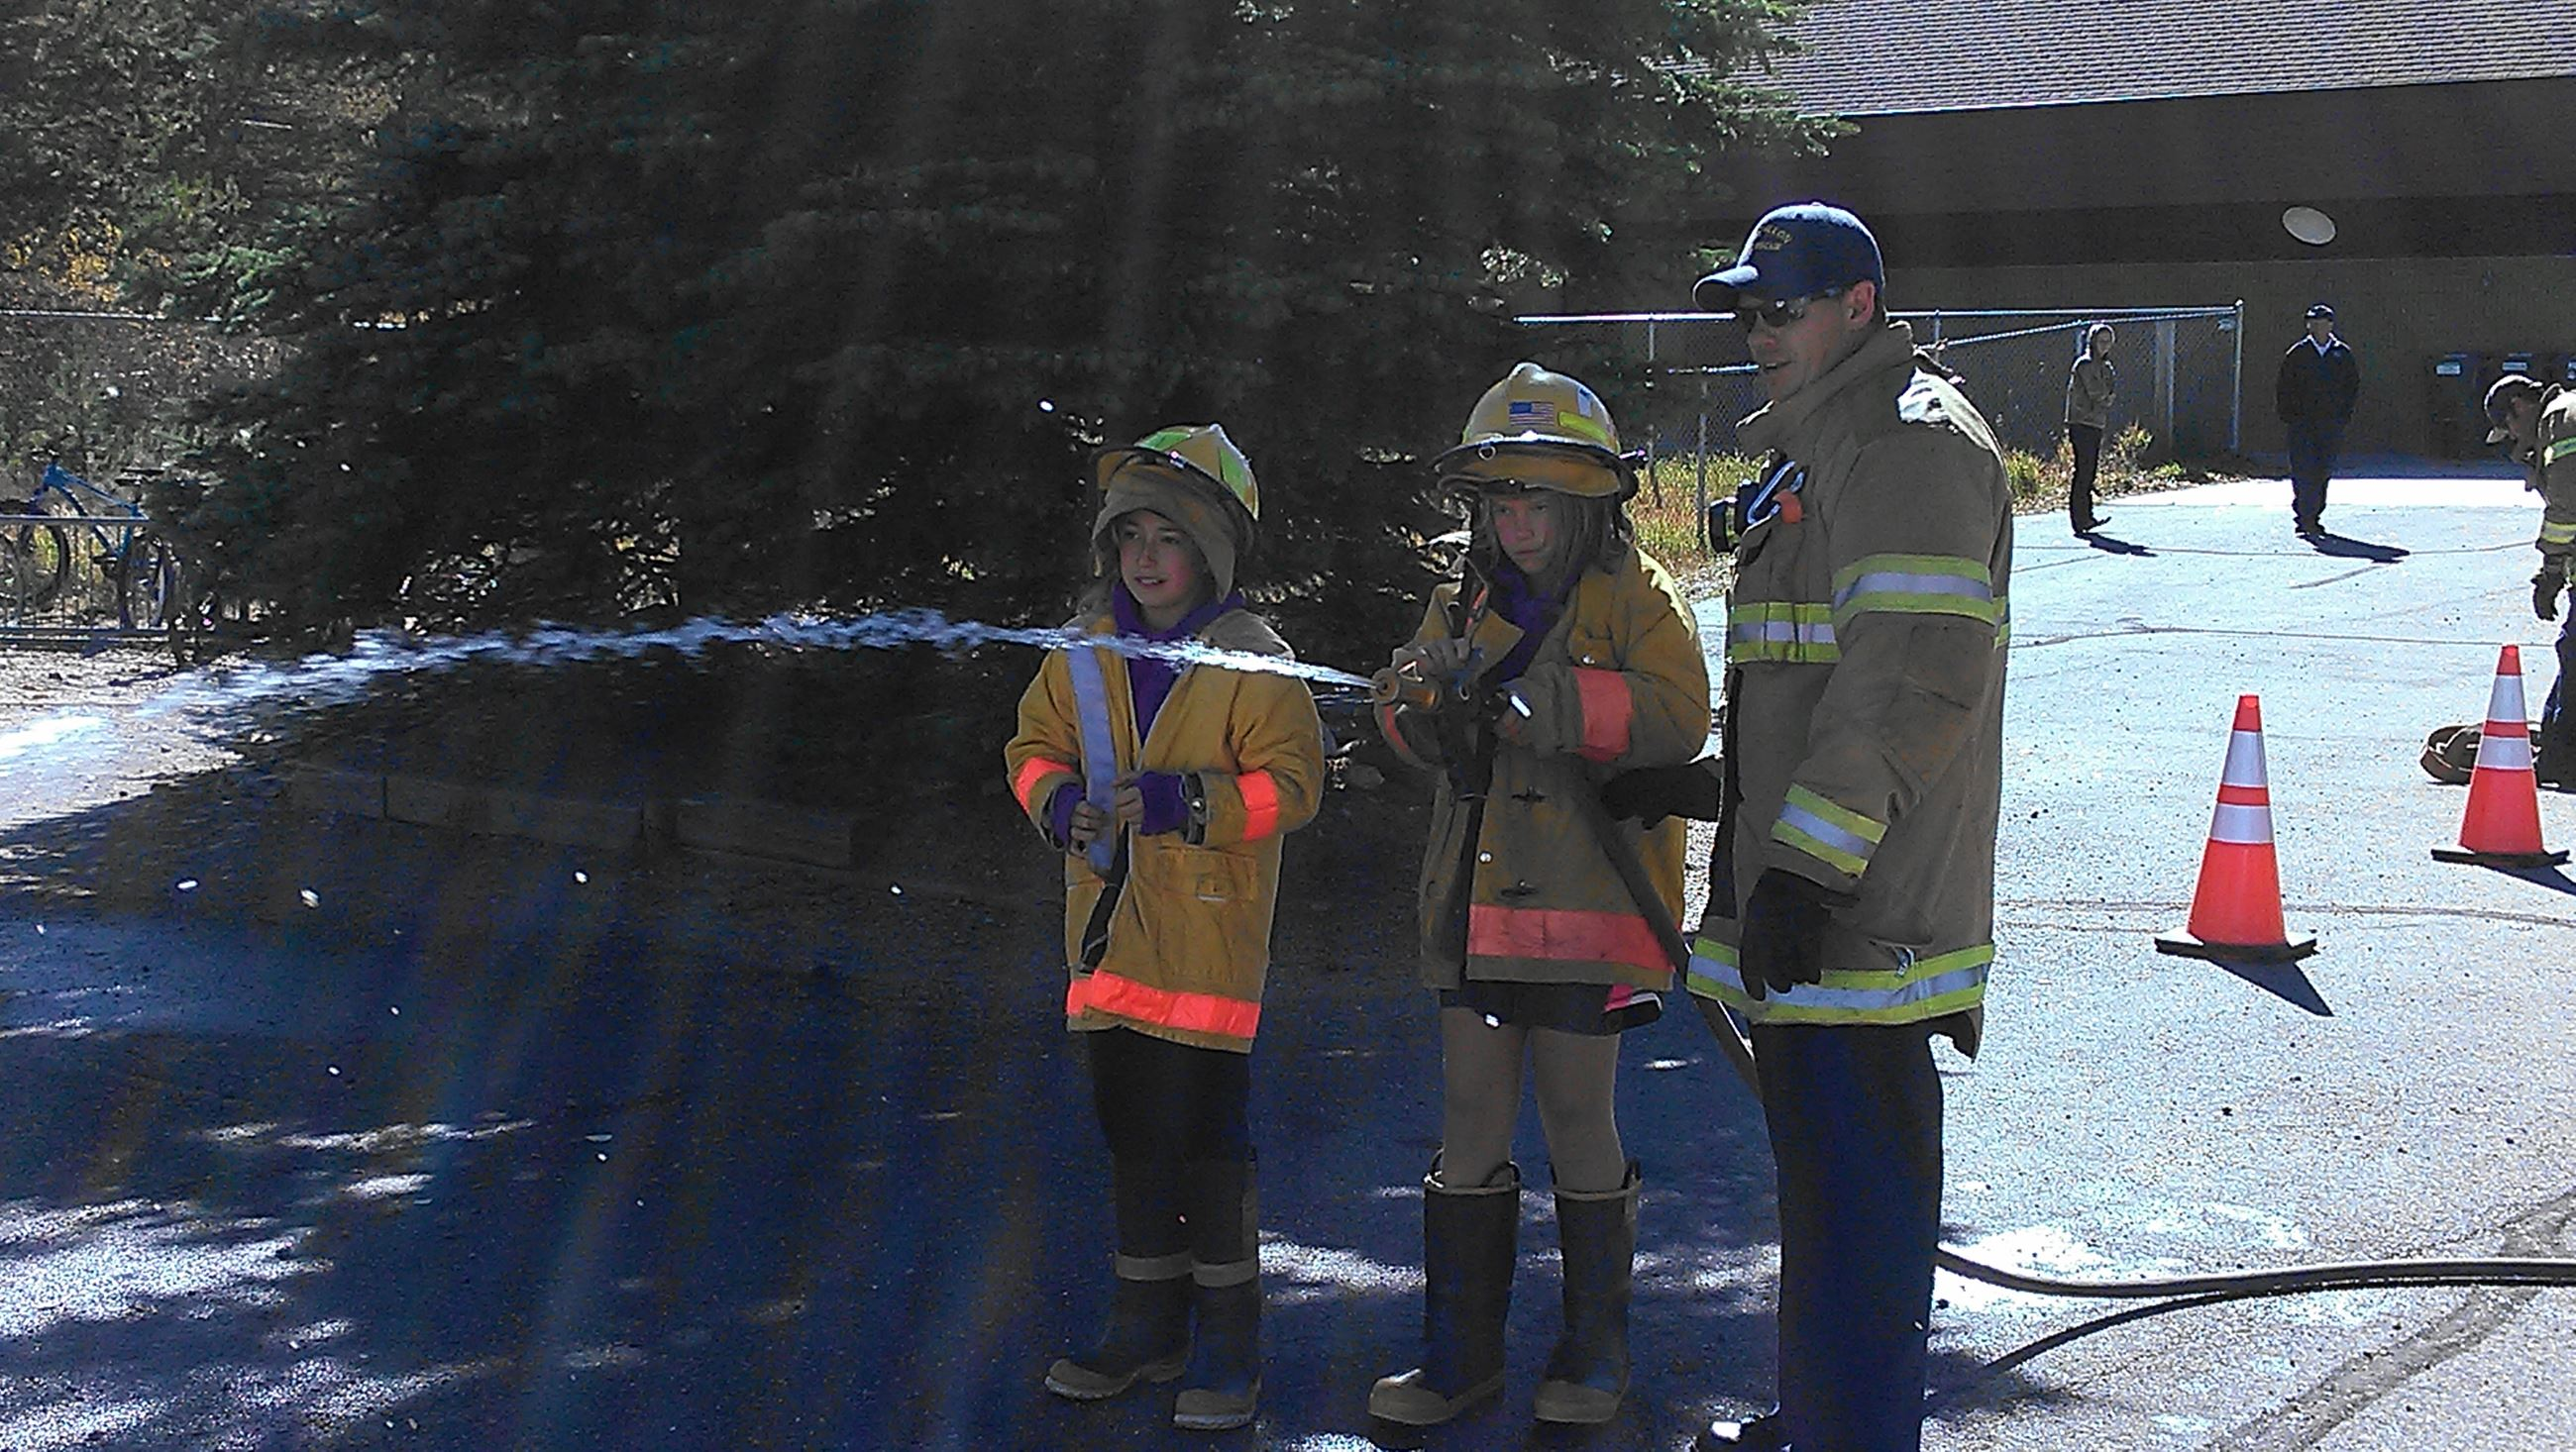 Fireman helping kids aim firehose